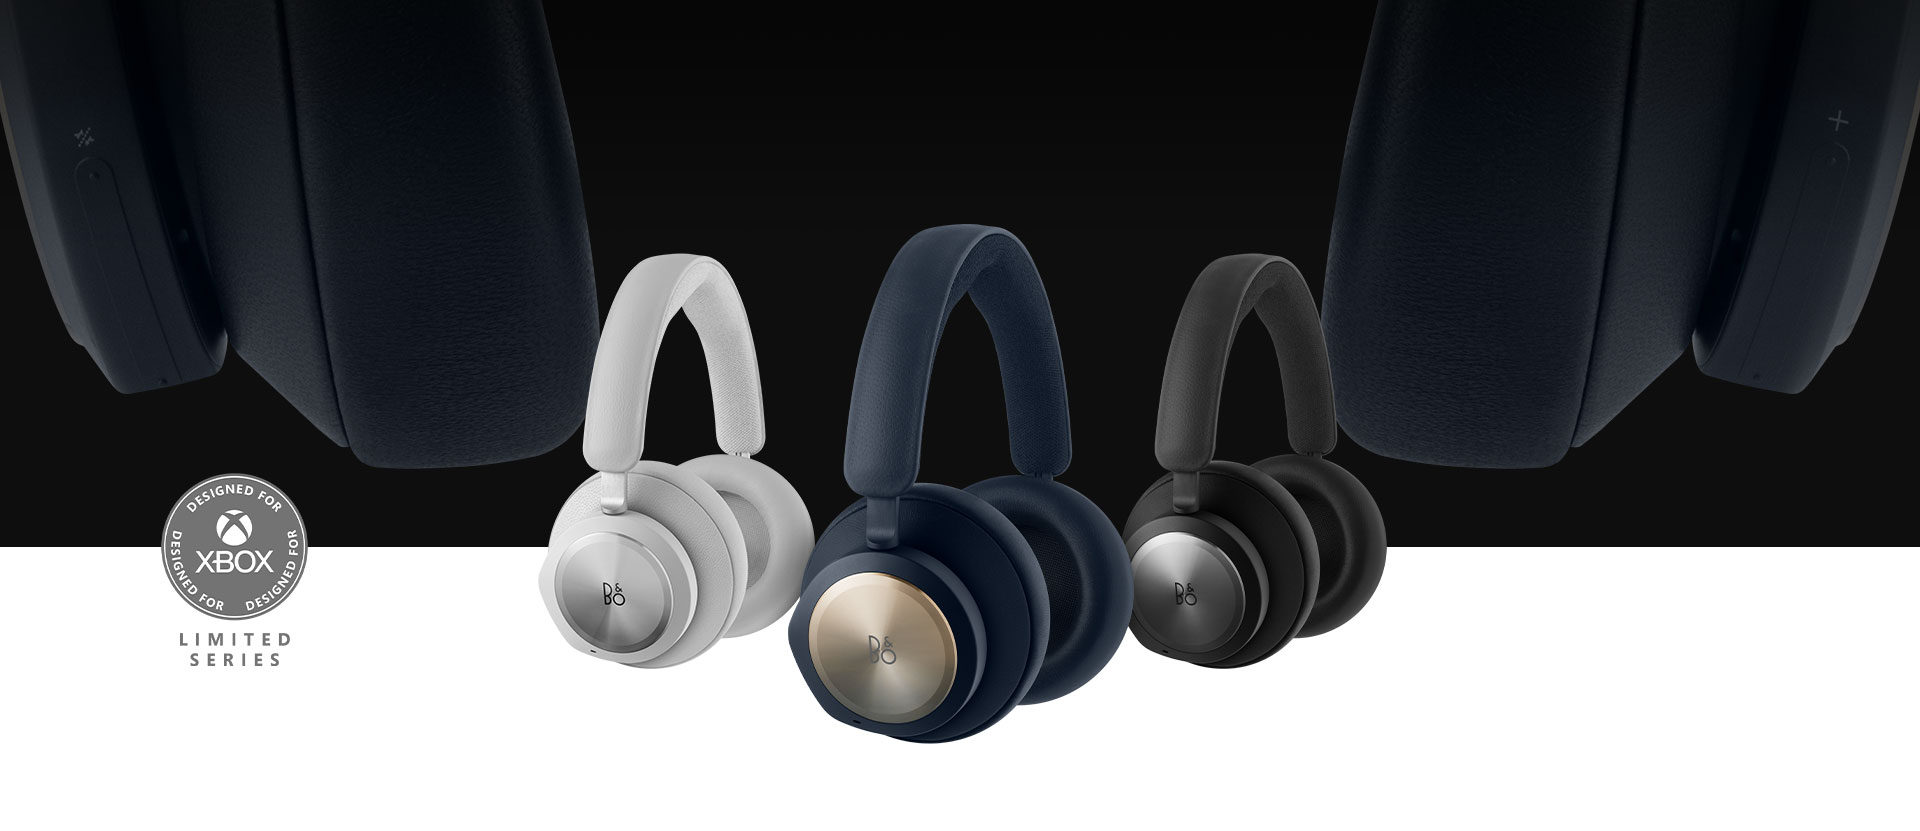 Band and Olufsen navy headset in front with the black and grey headset beside it